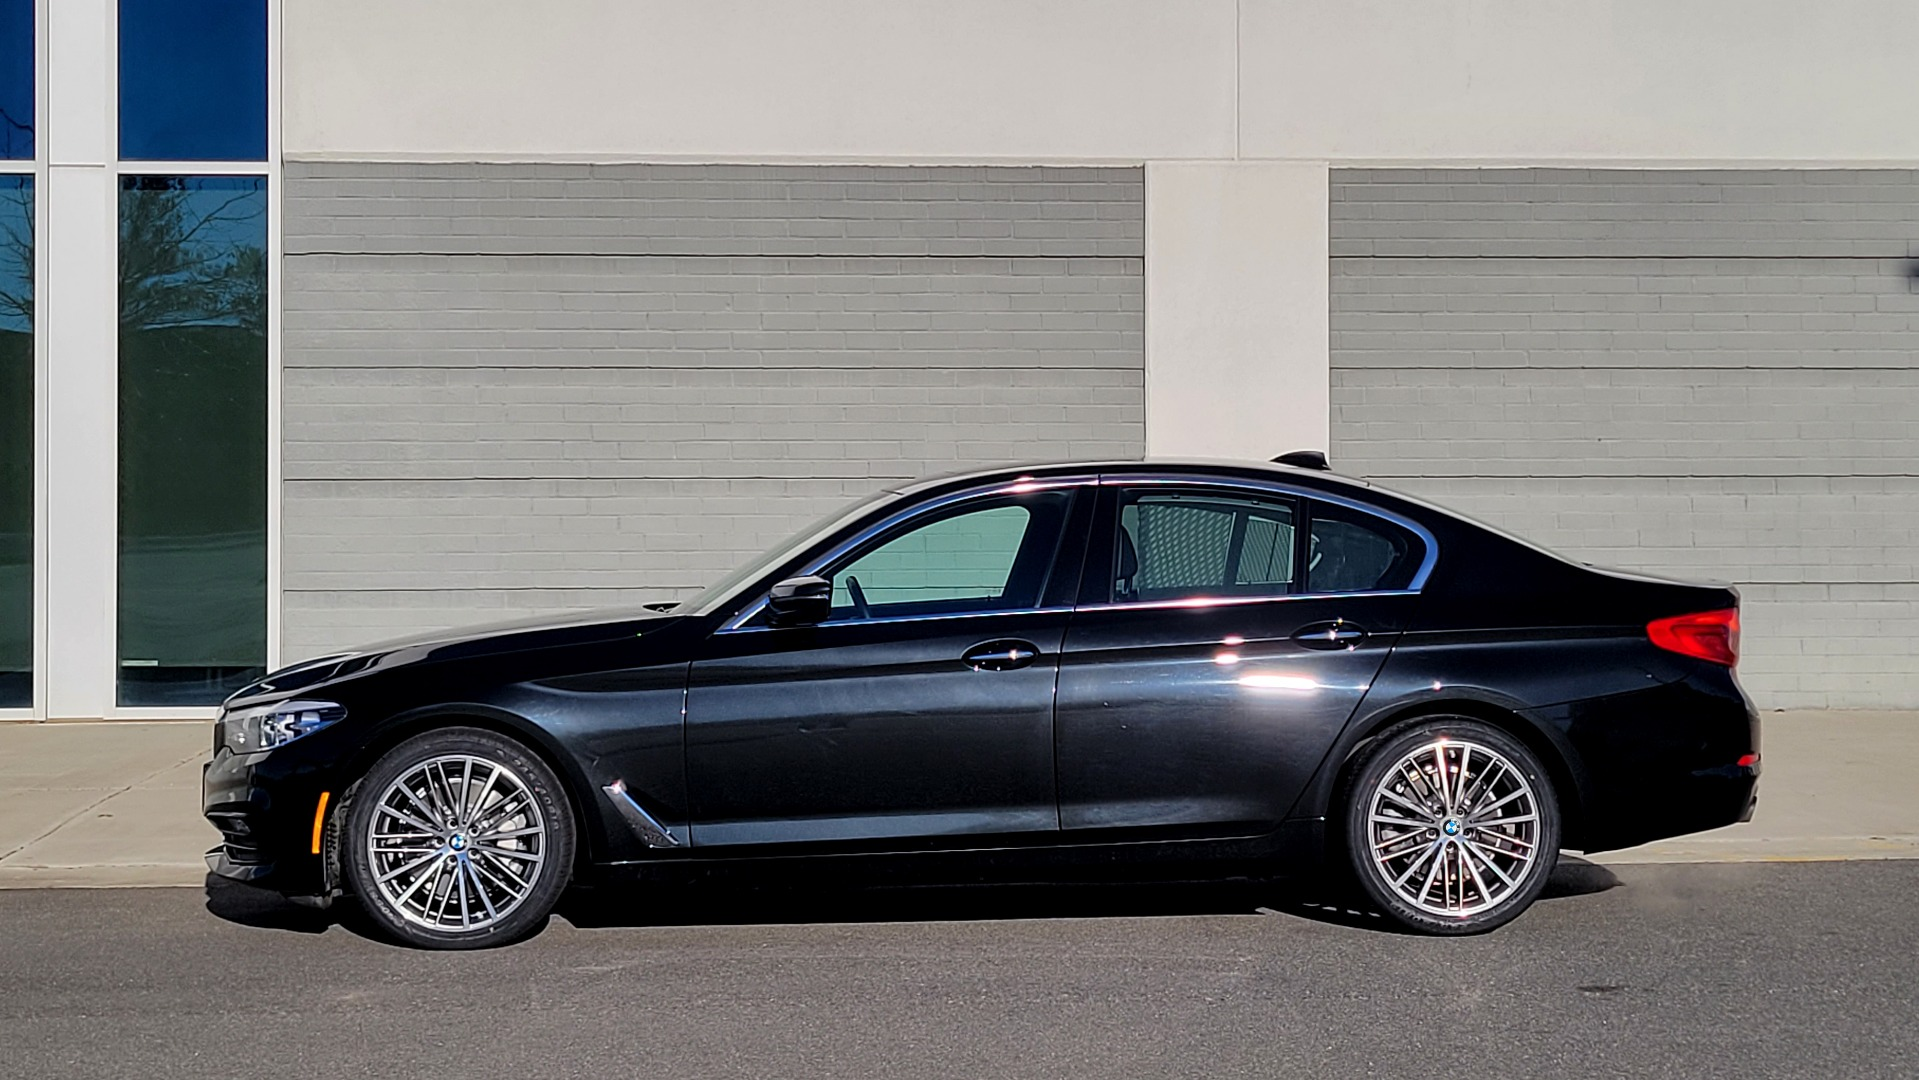 Used 2017 BMW 5 SERIES 530I XDRIVE PREMIUM / NAV / SUNROOF / PARK ASST / CLOD WTHR / REARVIEW for sale Sold at Formula Imports in Charlotte NC 28227 4